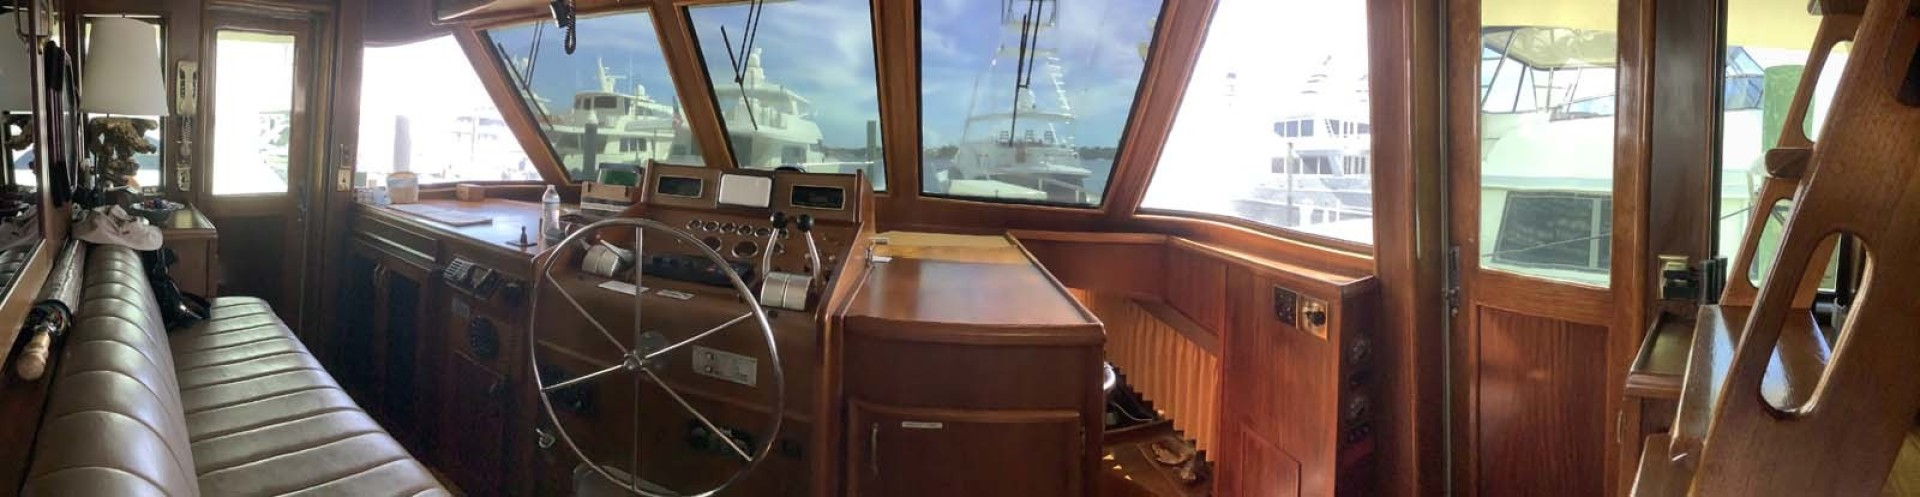 Hatteras-Motor Yacht 1985-Ruffian North Palm Beach-Florida-United States-Wheelhouse-1463635 | Thumbnail